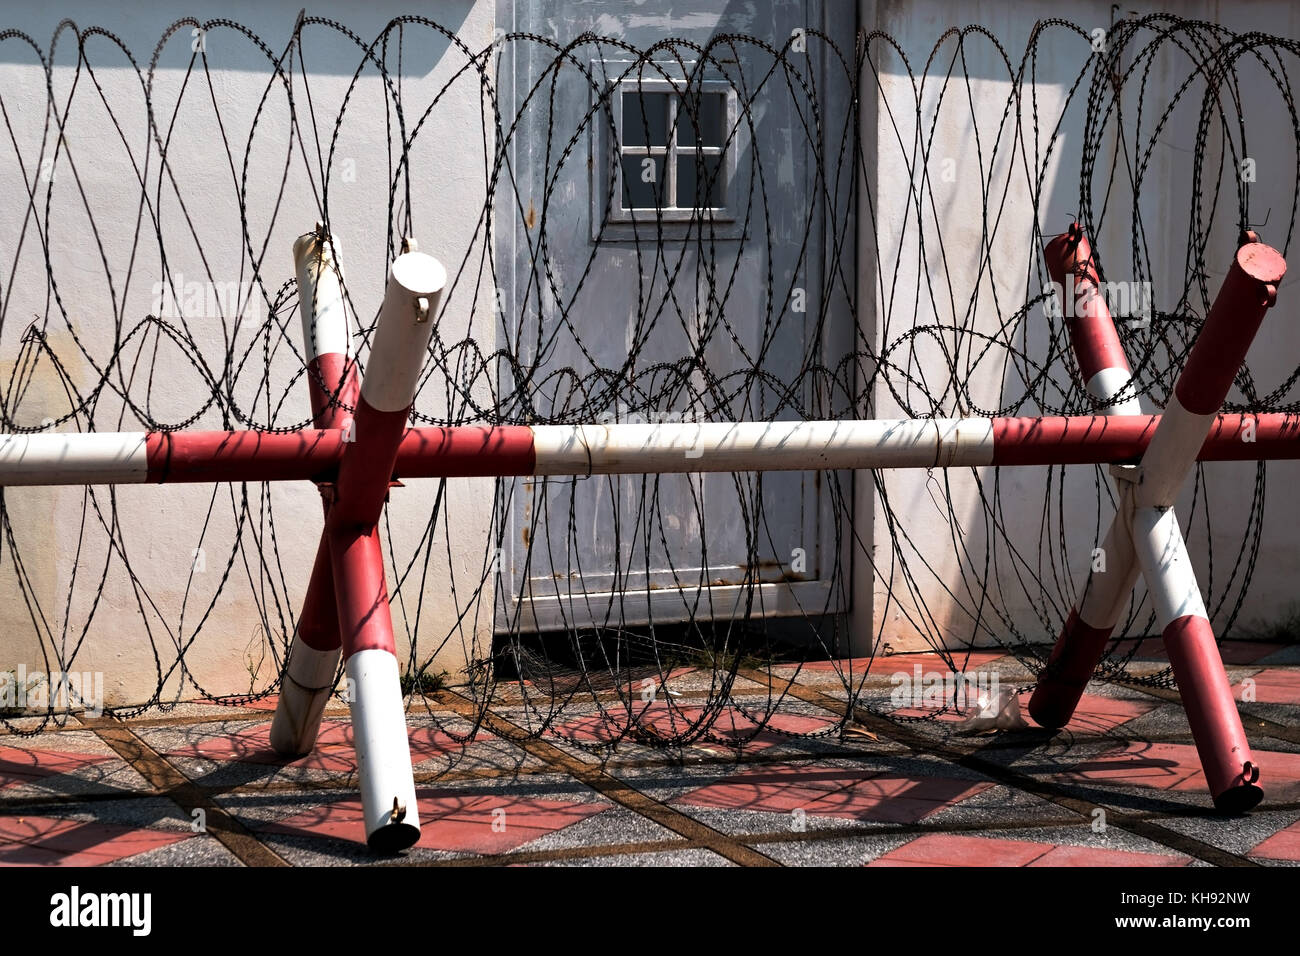 barb wire on entrance to the restricted area - Stock Image